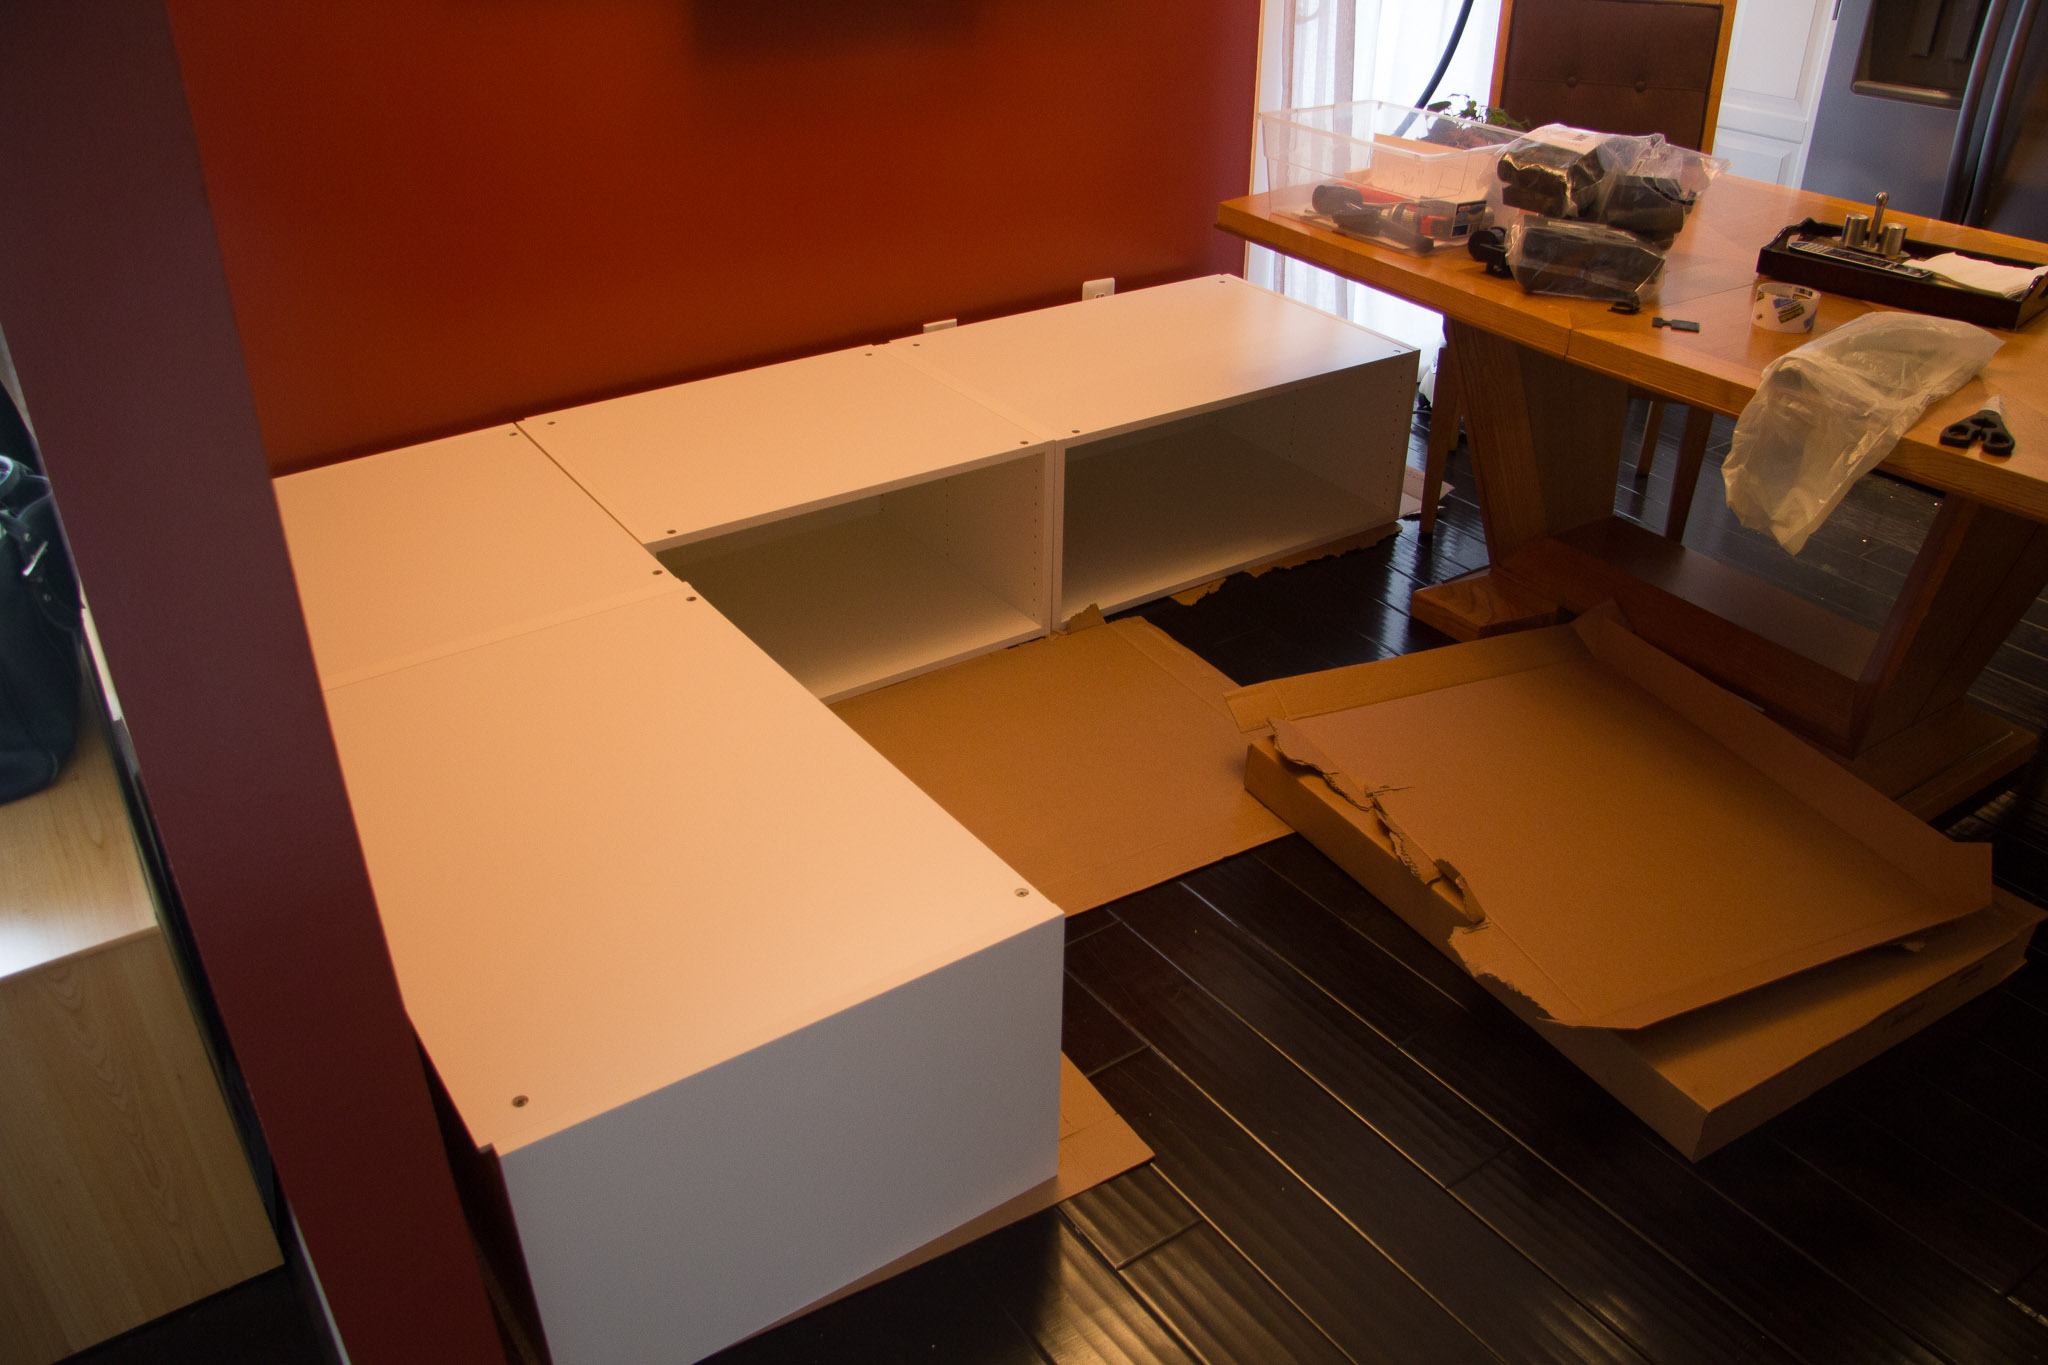 How To Build Bench Seating DIY Kitchen Banquette Bench Using Ikea Cabinets (Ikea Hacks)